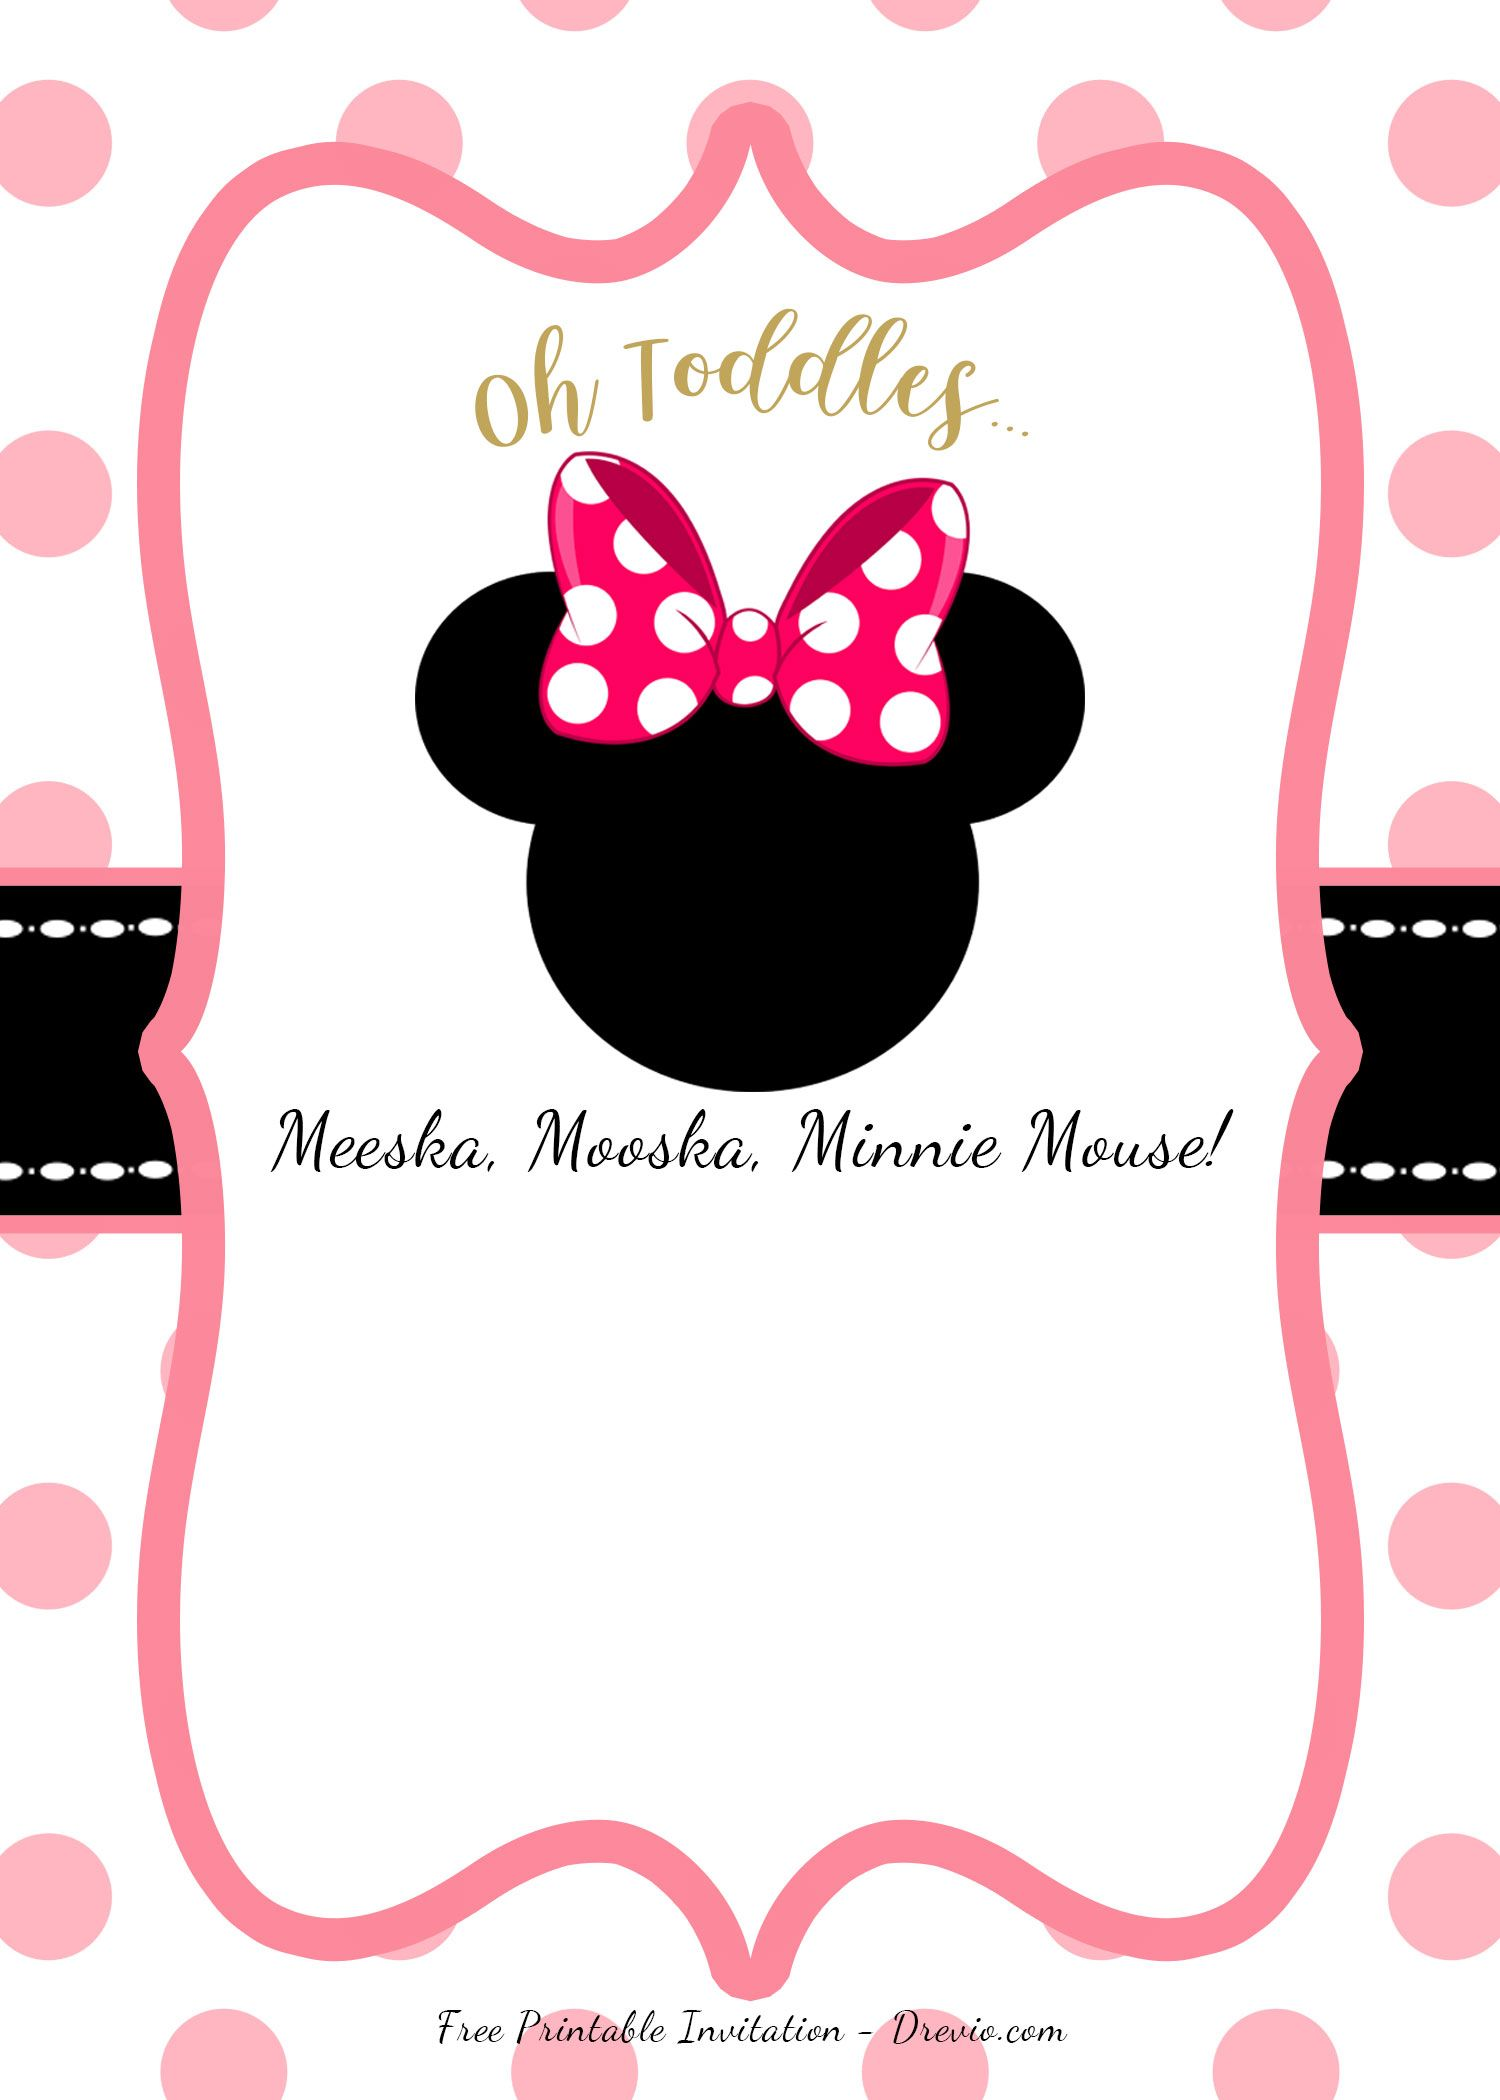 FREE Pink Minnie Mouse Birthday Party DIY Printable Invitation ...